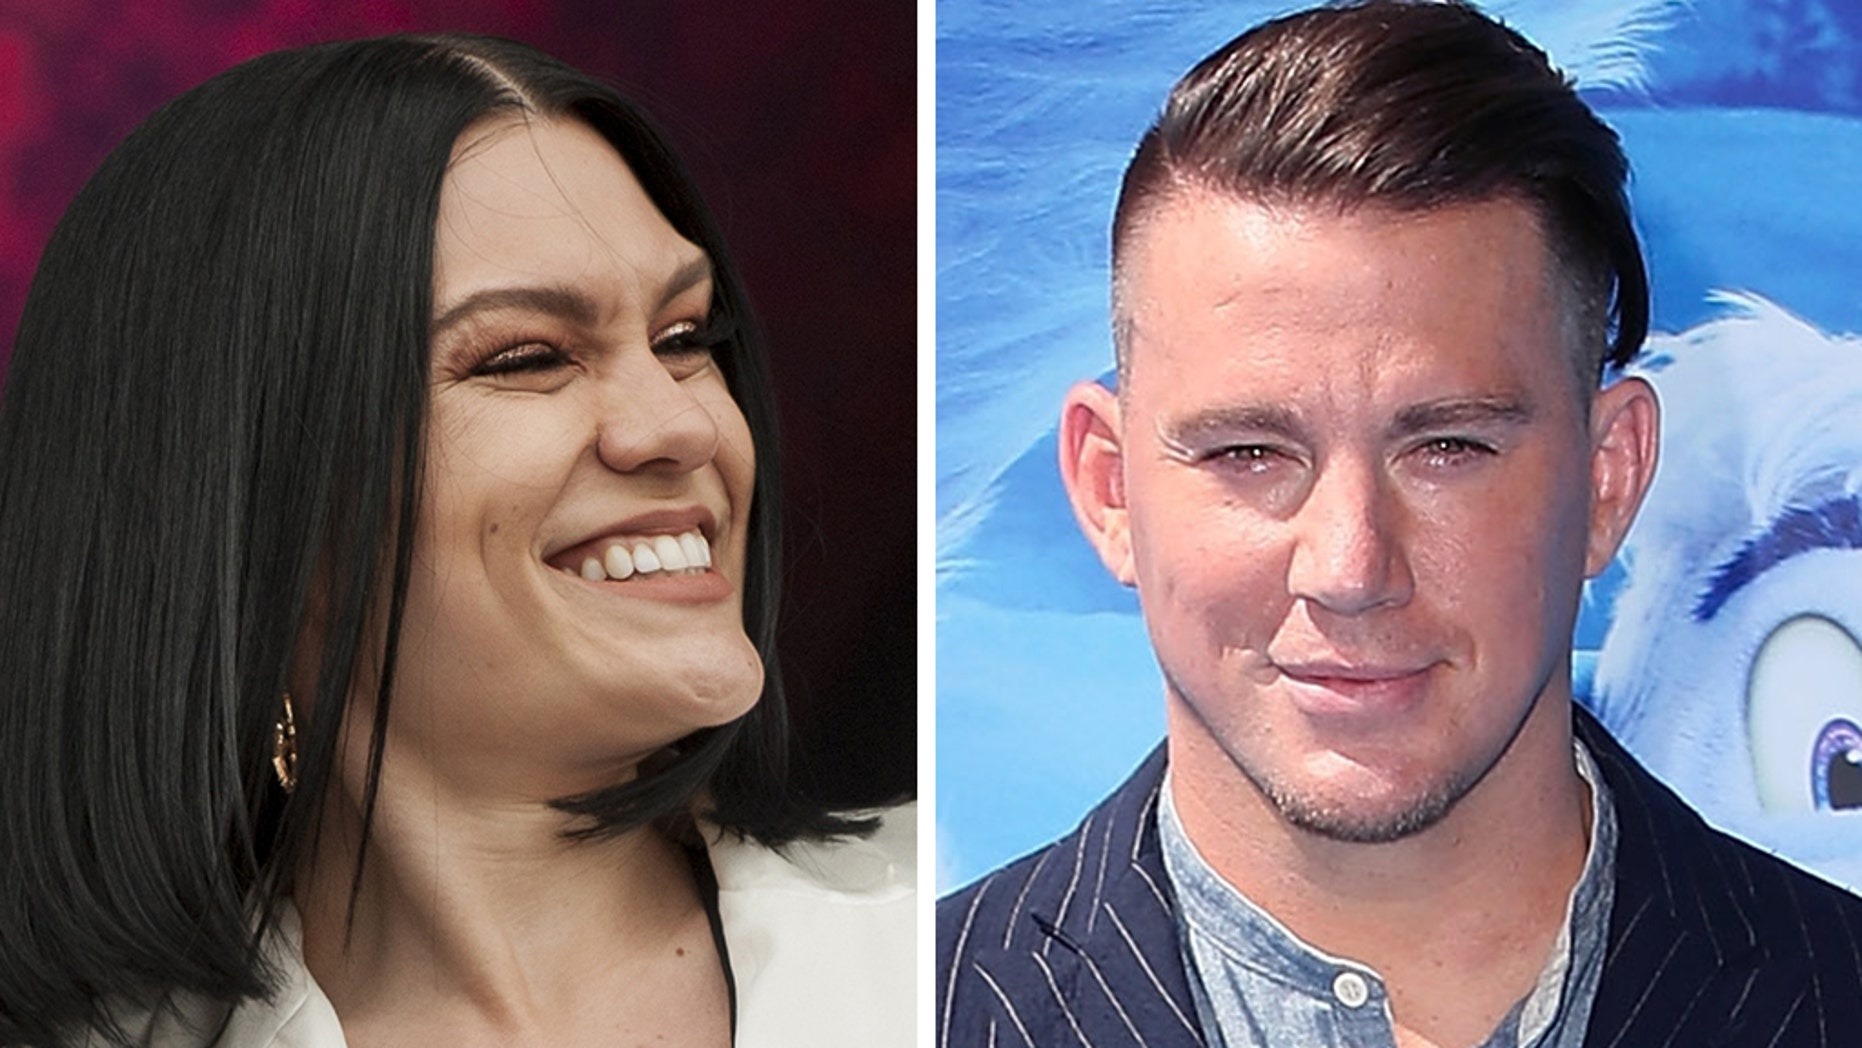 Channing Tatum And Jessie J Spotted On Minigolf Date